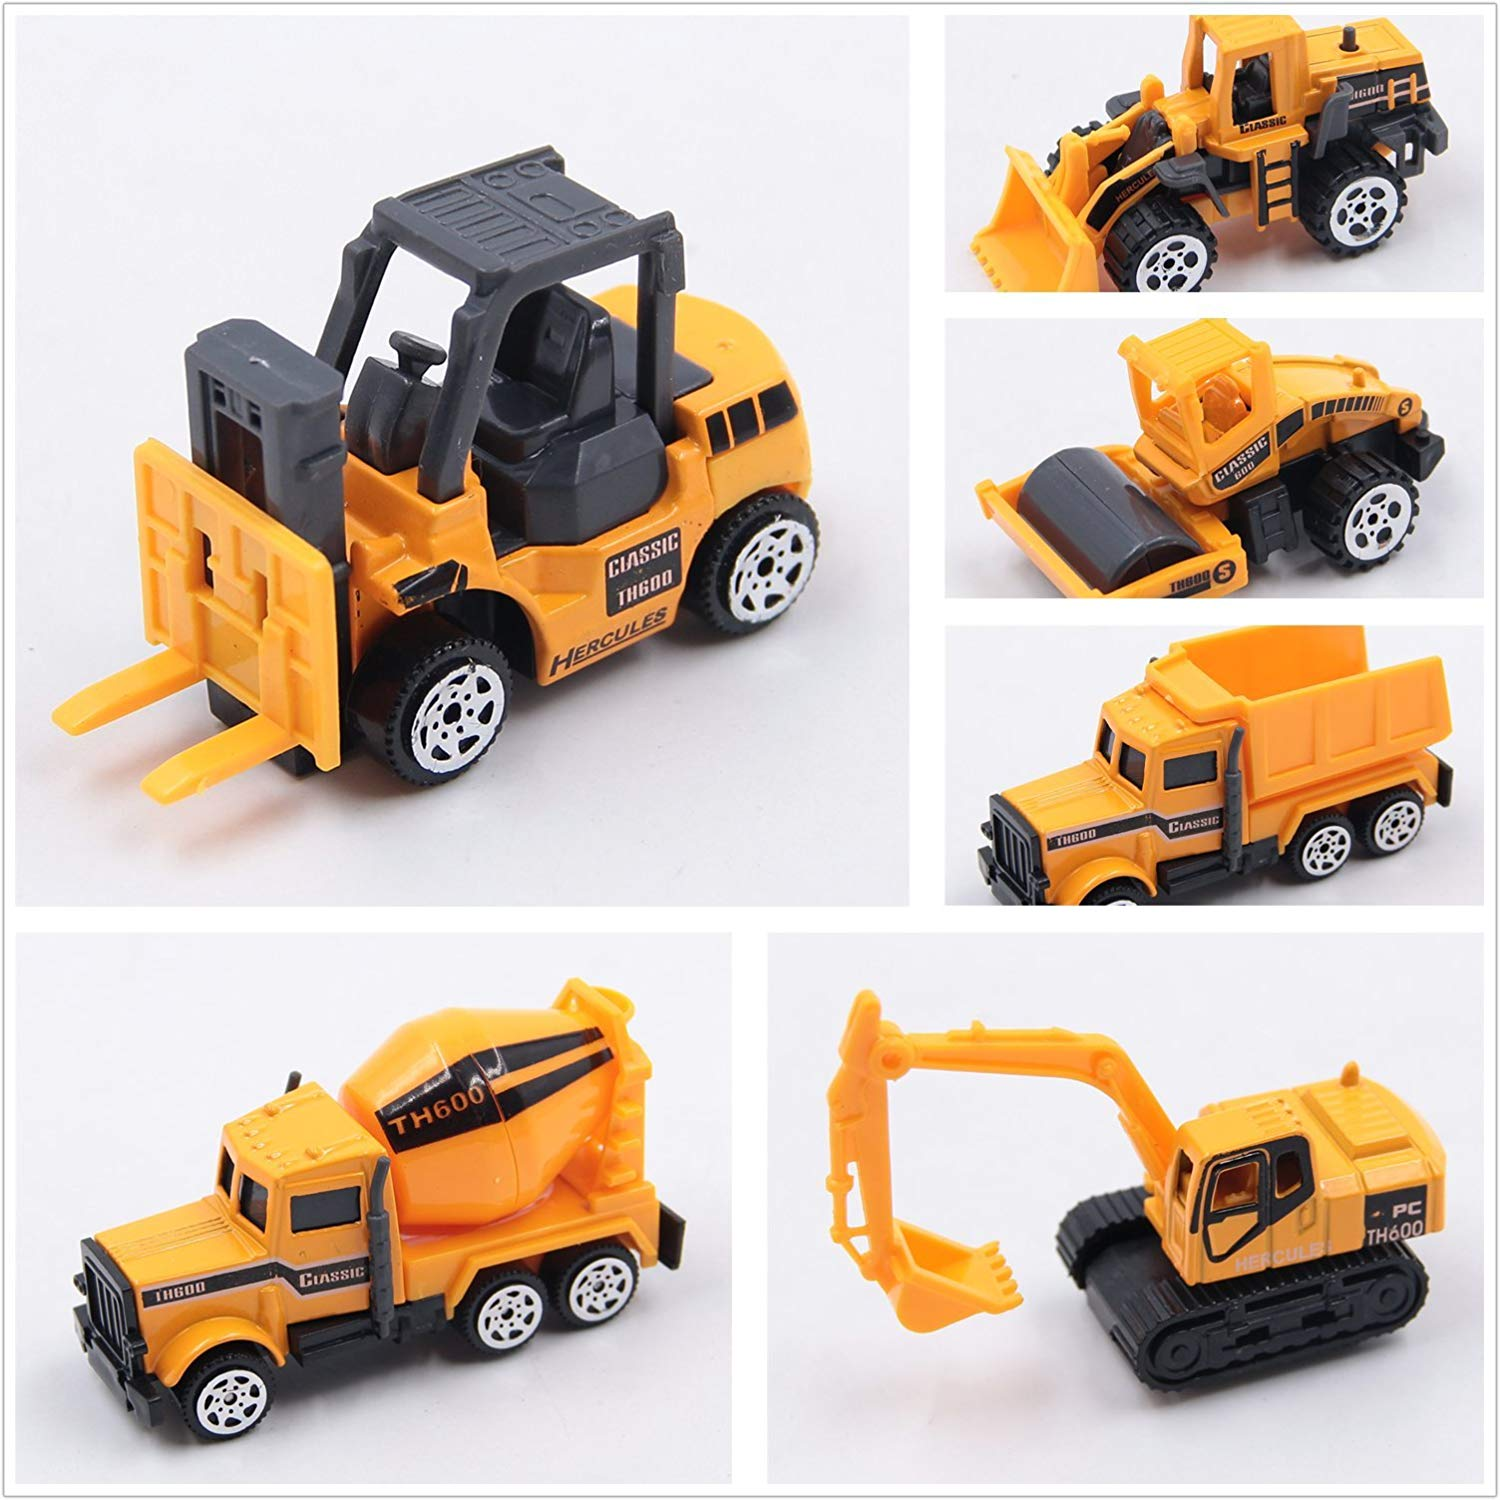 AT-Mizhi 1:64 Complete Construction Crew 5 Pieces Mini Toy Diecast Vehicle Play Gift Set, Comes with Variety of Vehicles and Figures for Kids Boys Toys Free Wheeling Die Cast Metal Diecast Toy Cars